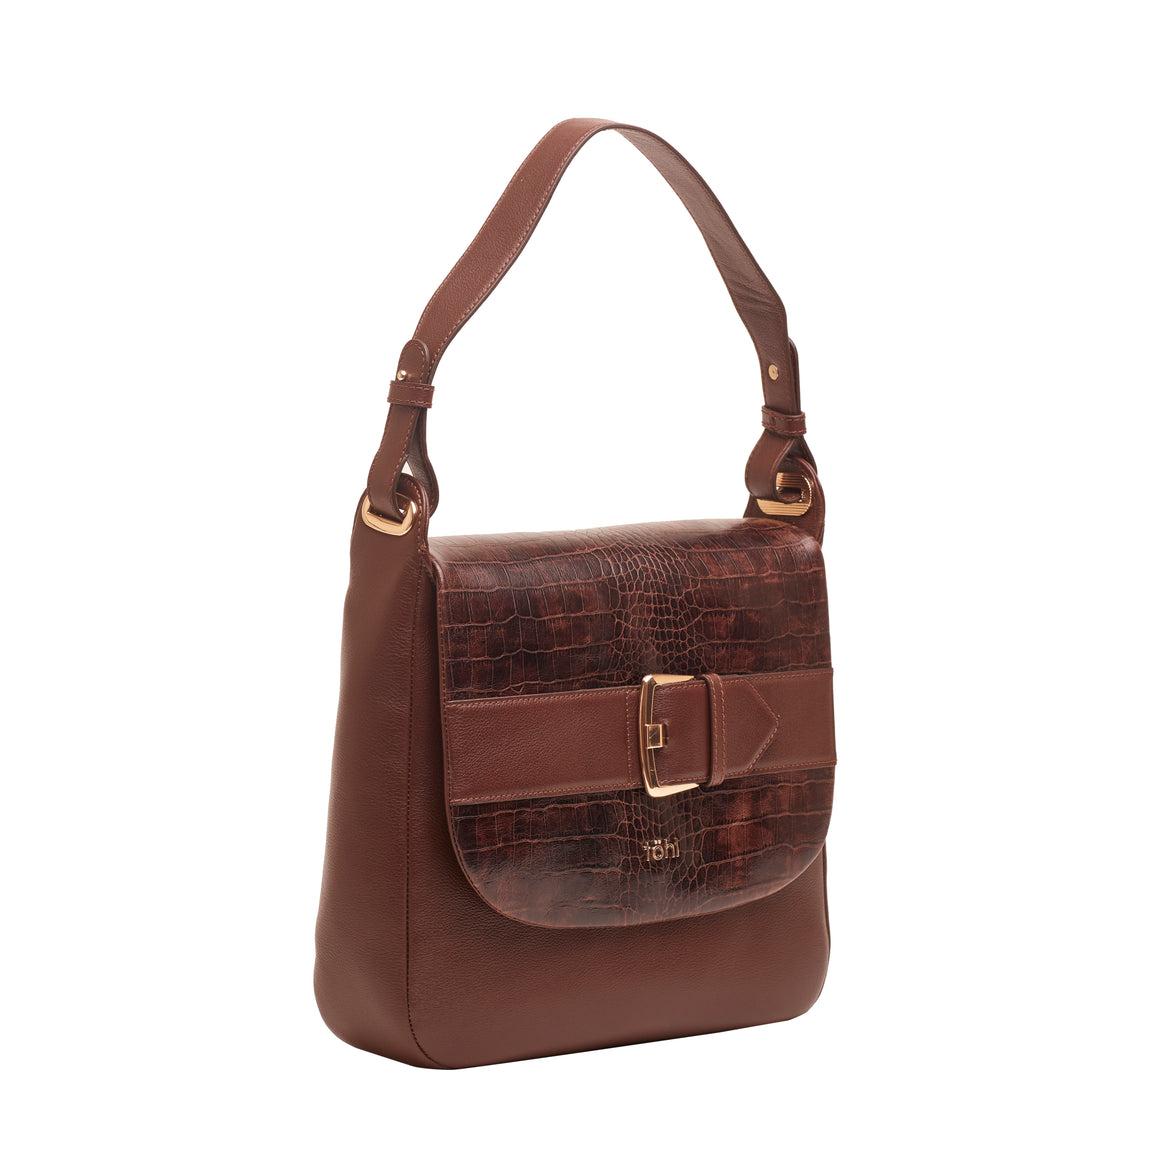 SB 0024 - TOHL DUSTY WOMEN'S BAG - CHOCO